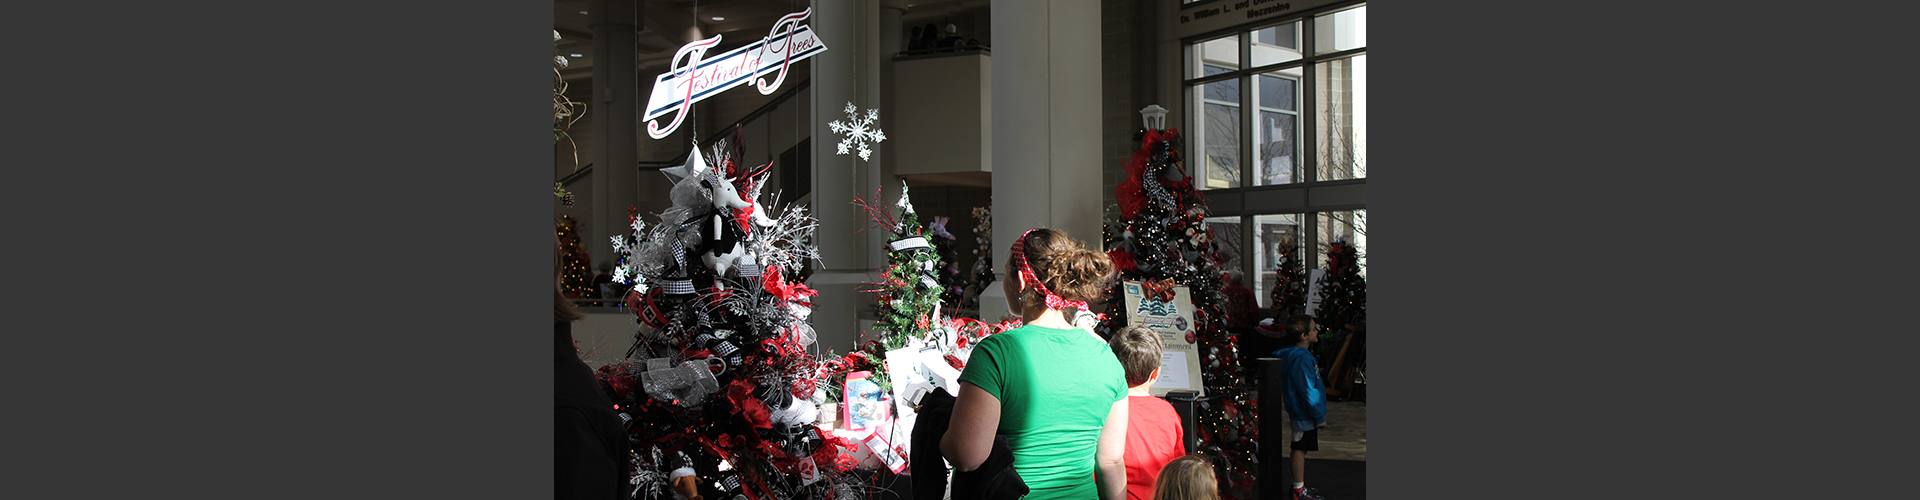 image of patrons viewing tree displays at the Festival of Trees